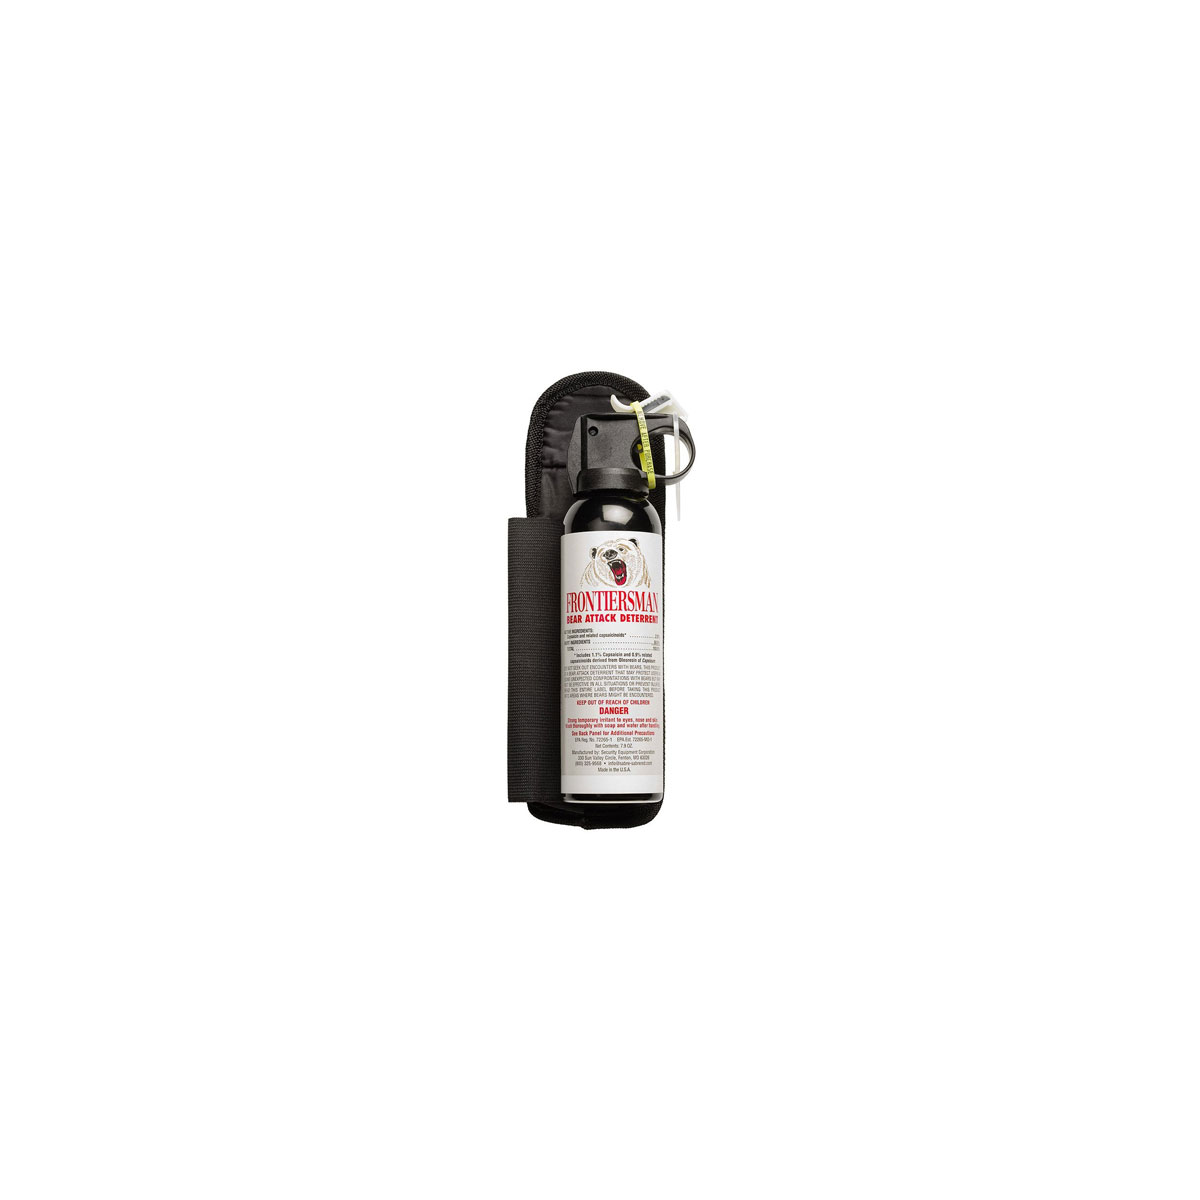 Bear Protection With Frontiersman Bear Spray: Bear Spray With Holster (Max Strength)